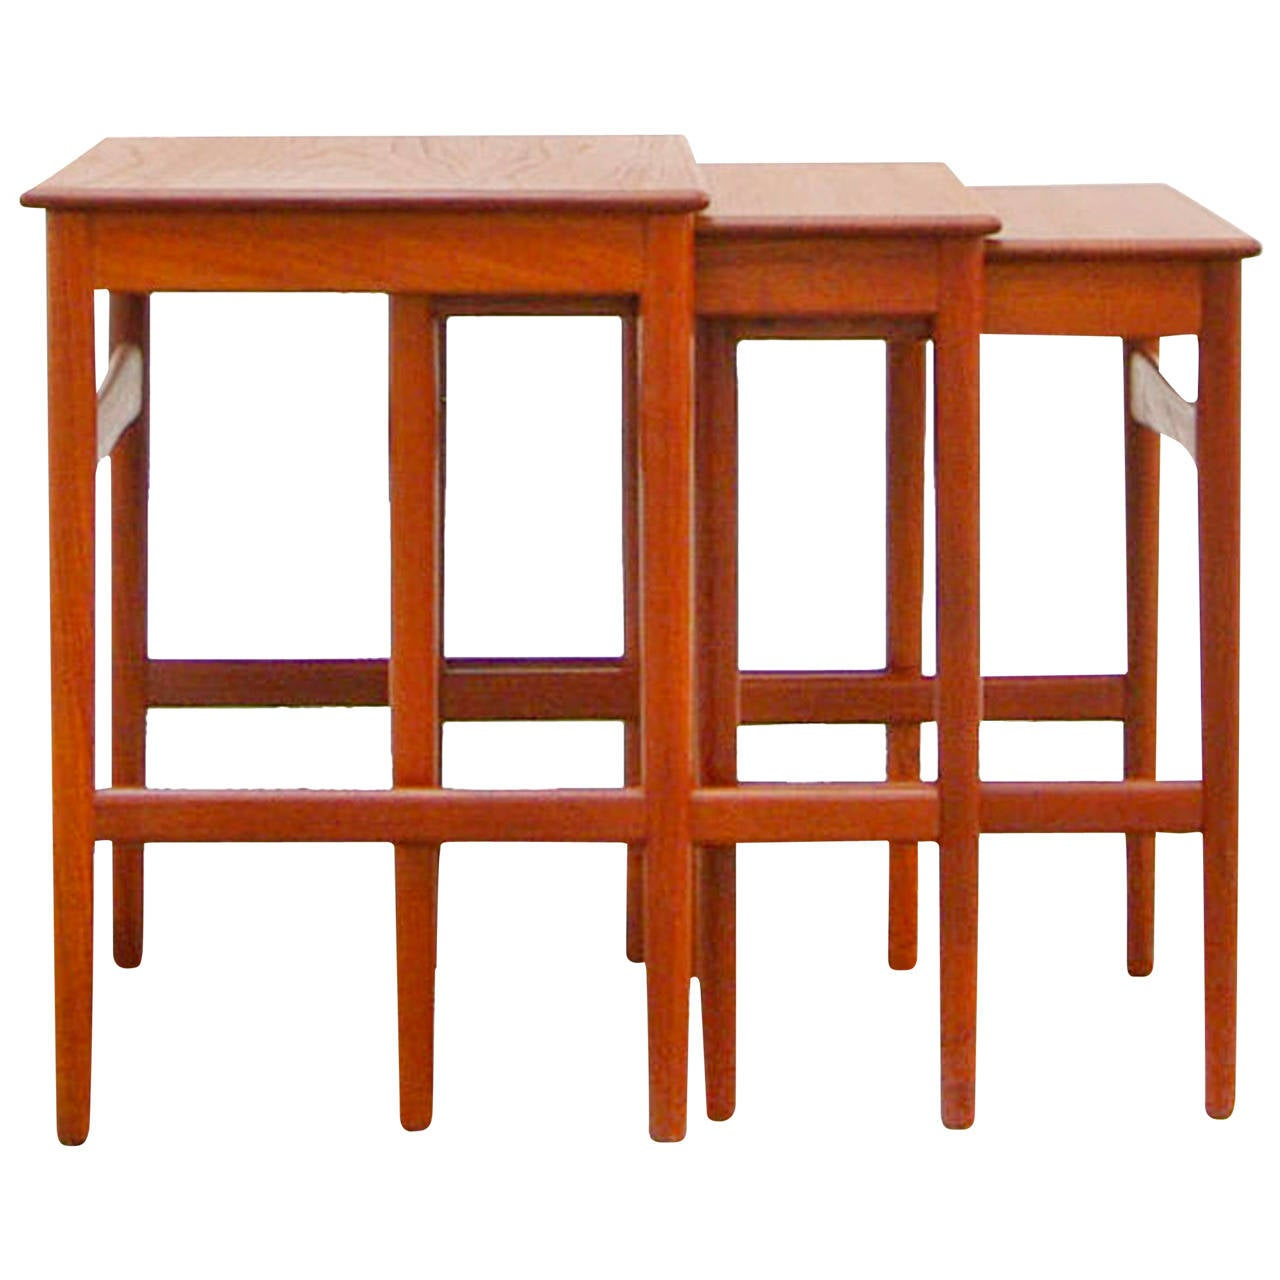 Nesting Tables By Hans Wegner For Andreas Tuck At40: andreas furniture